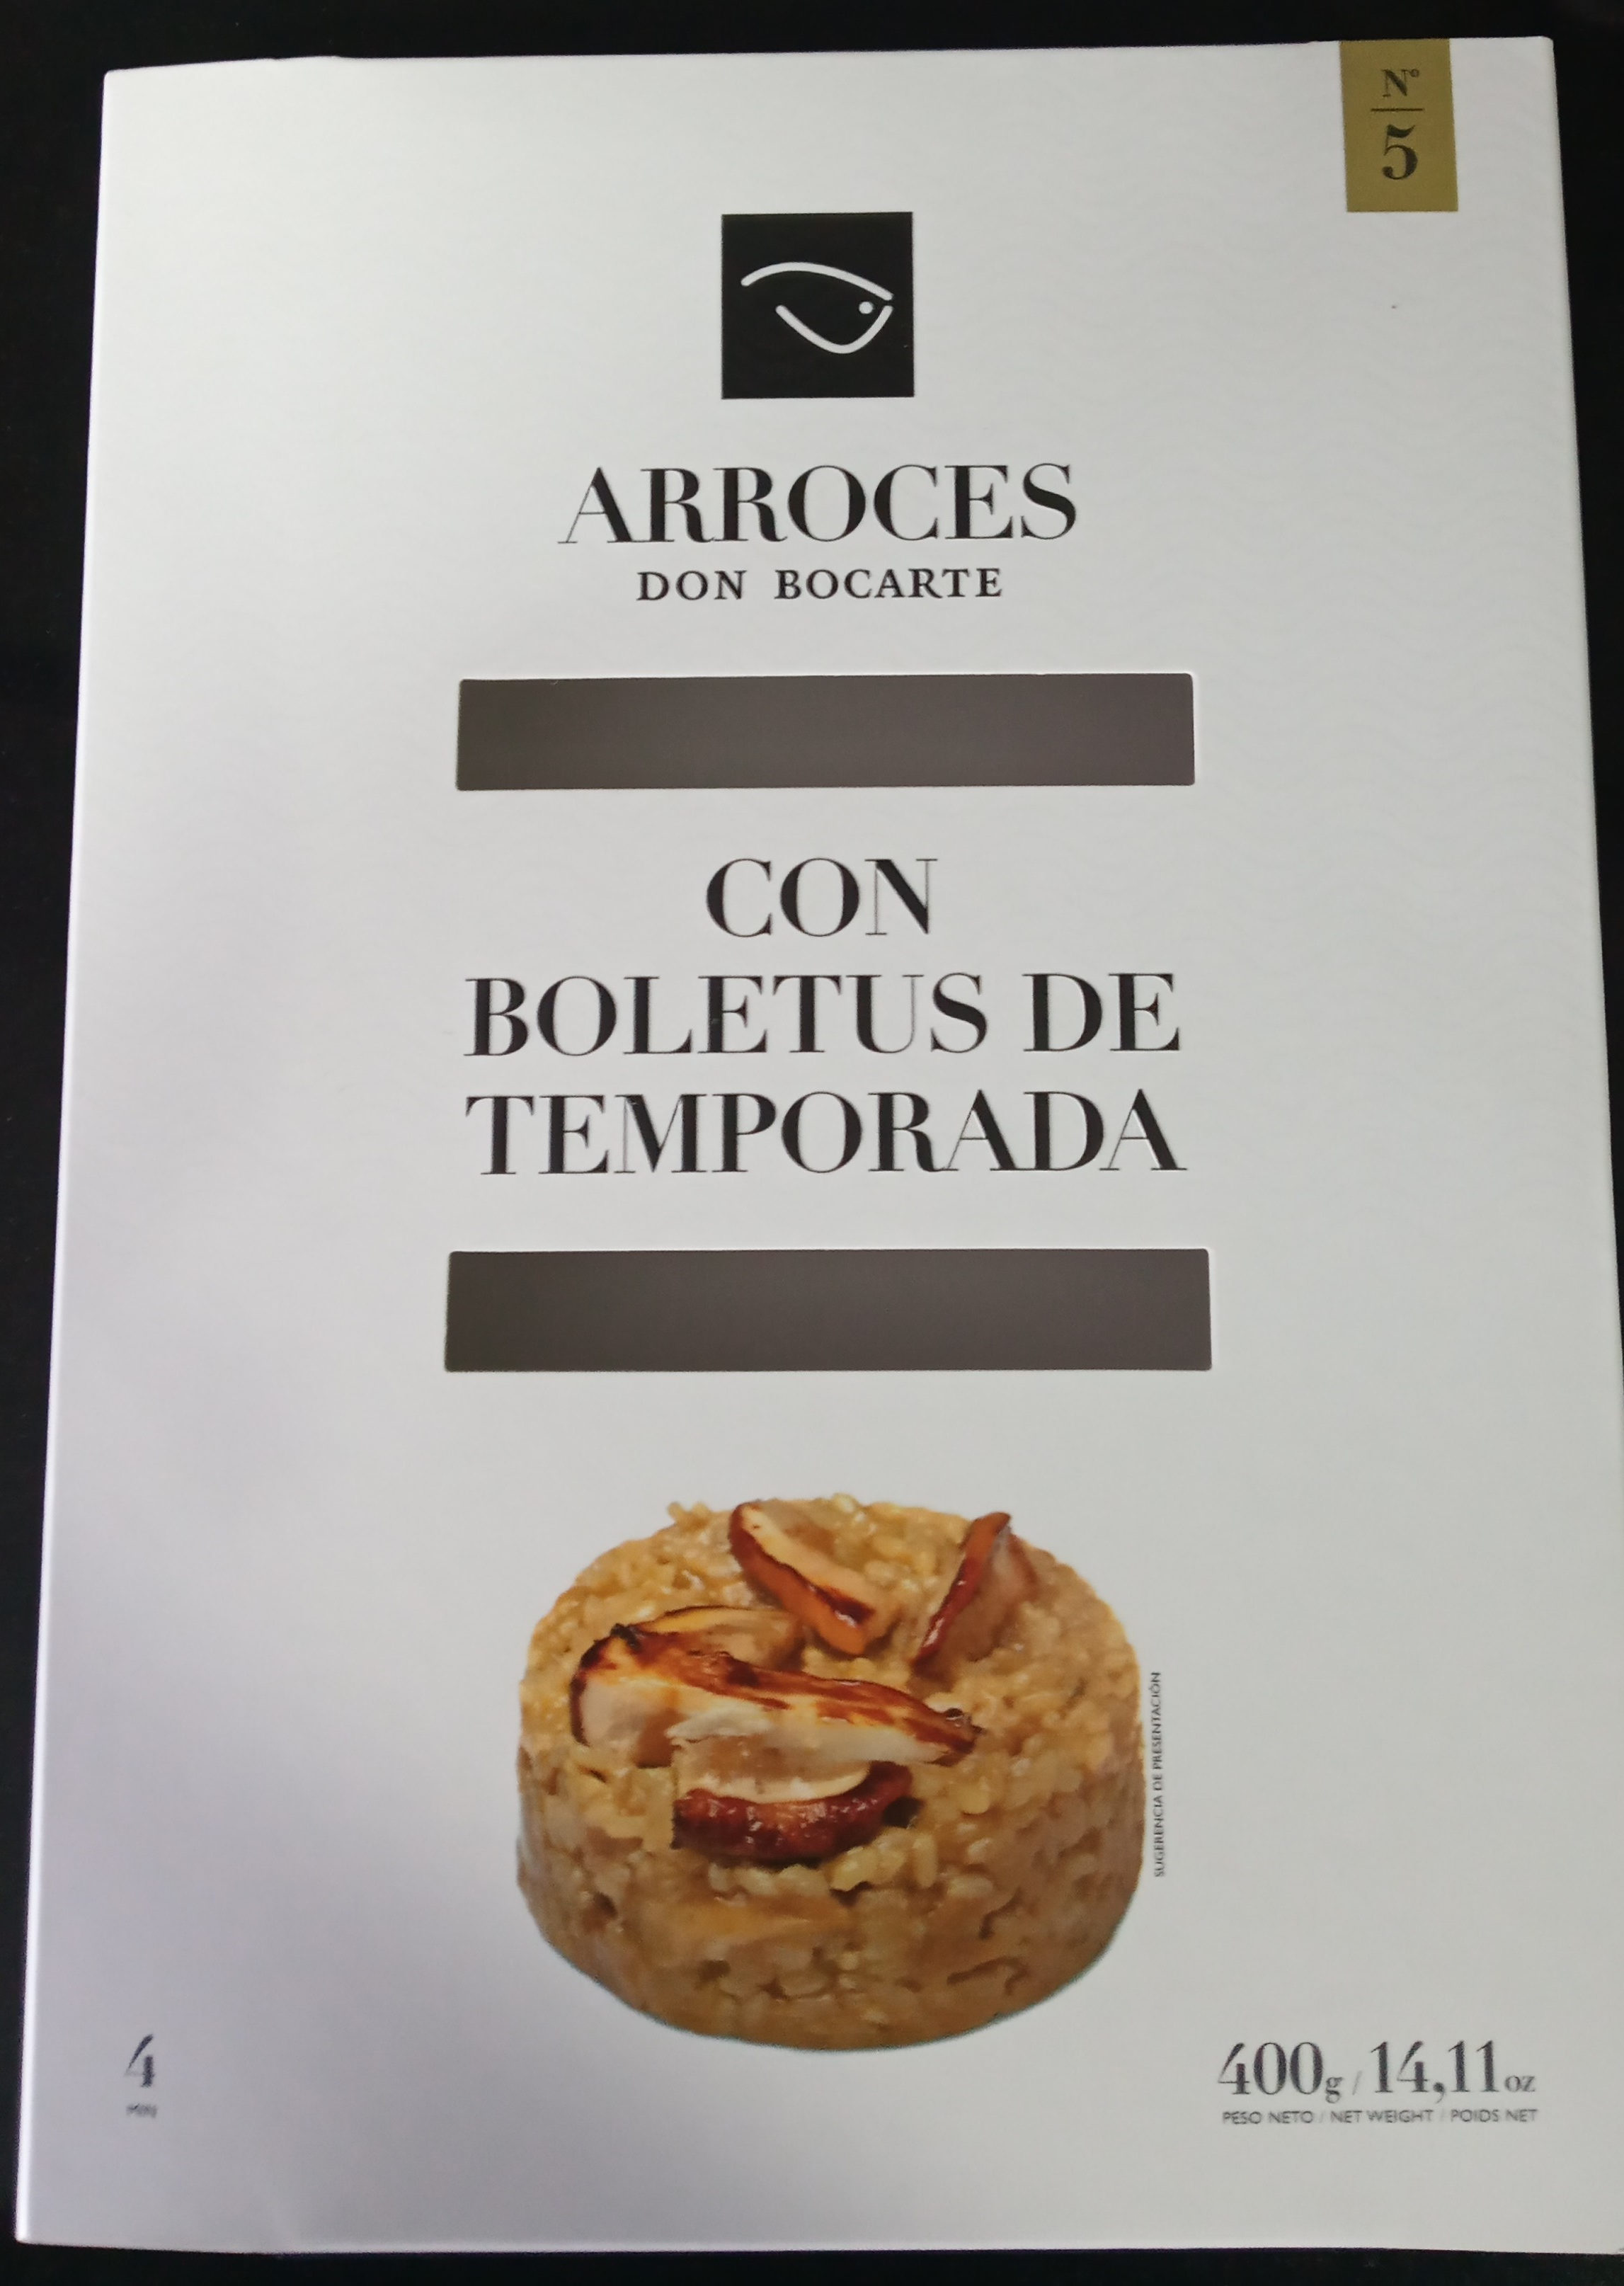 Arroces Don Bocarte con boletus de temporada - Product - es